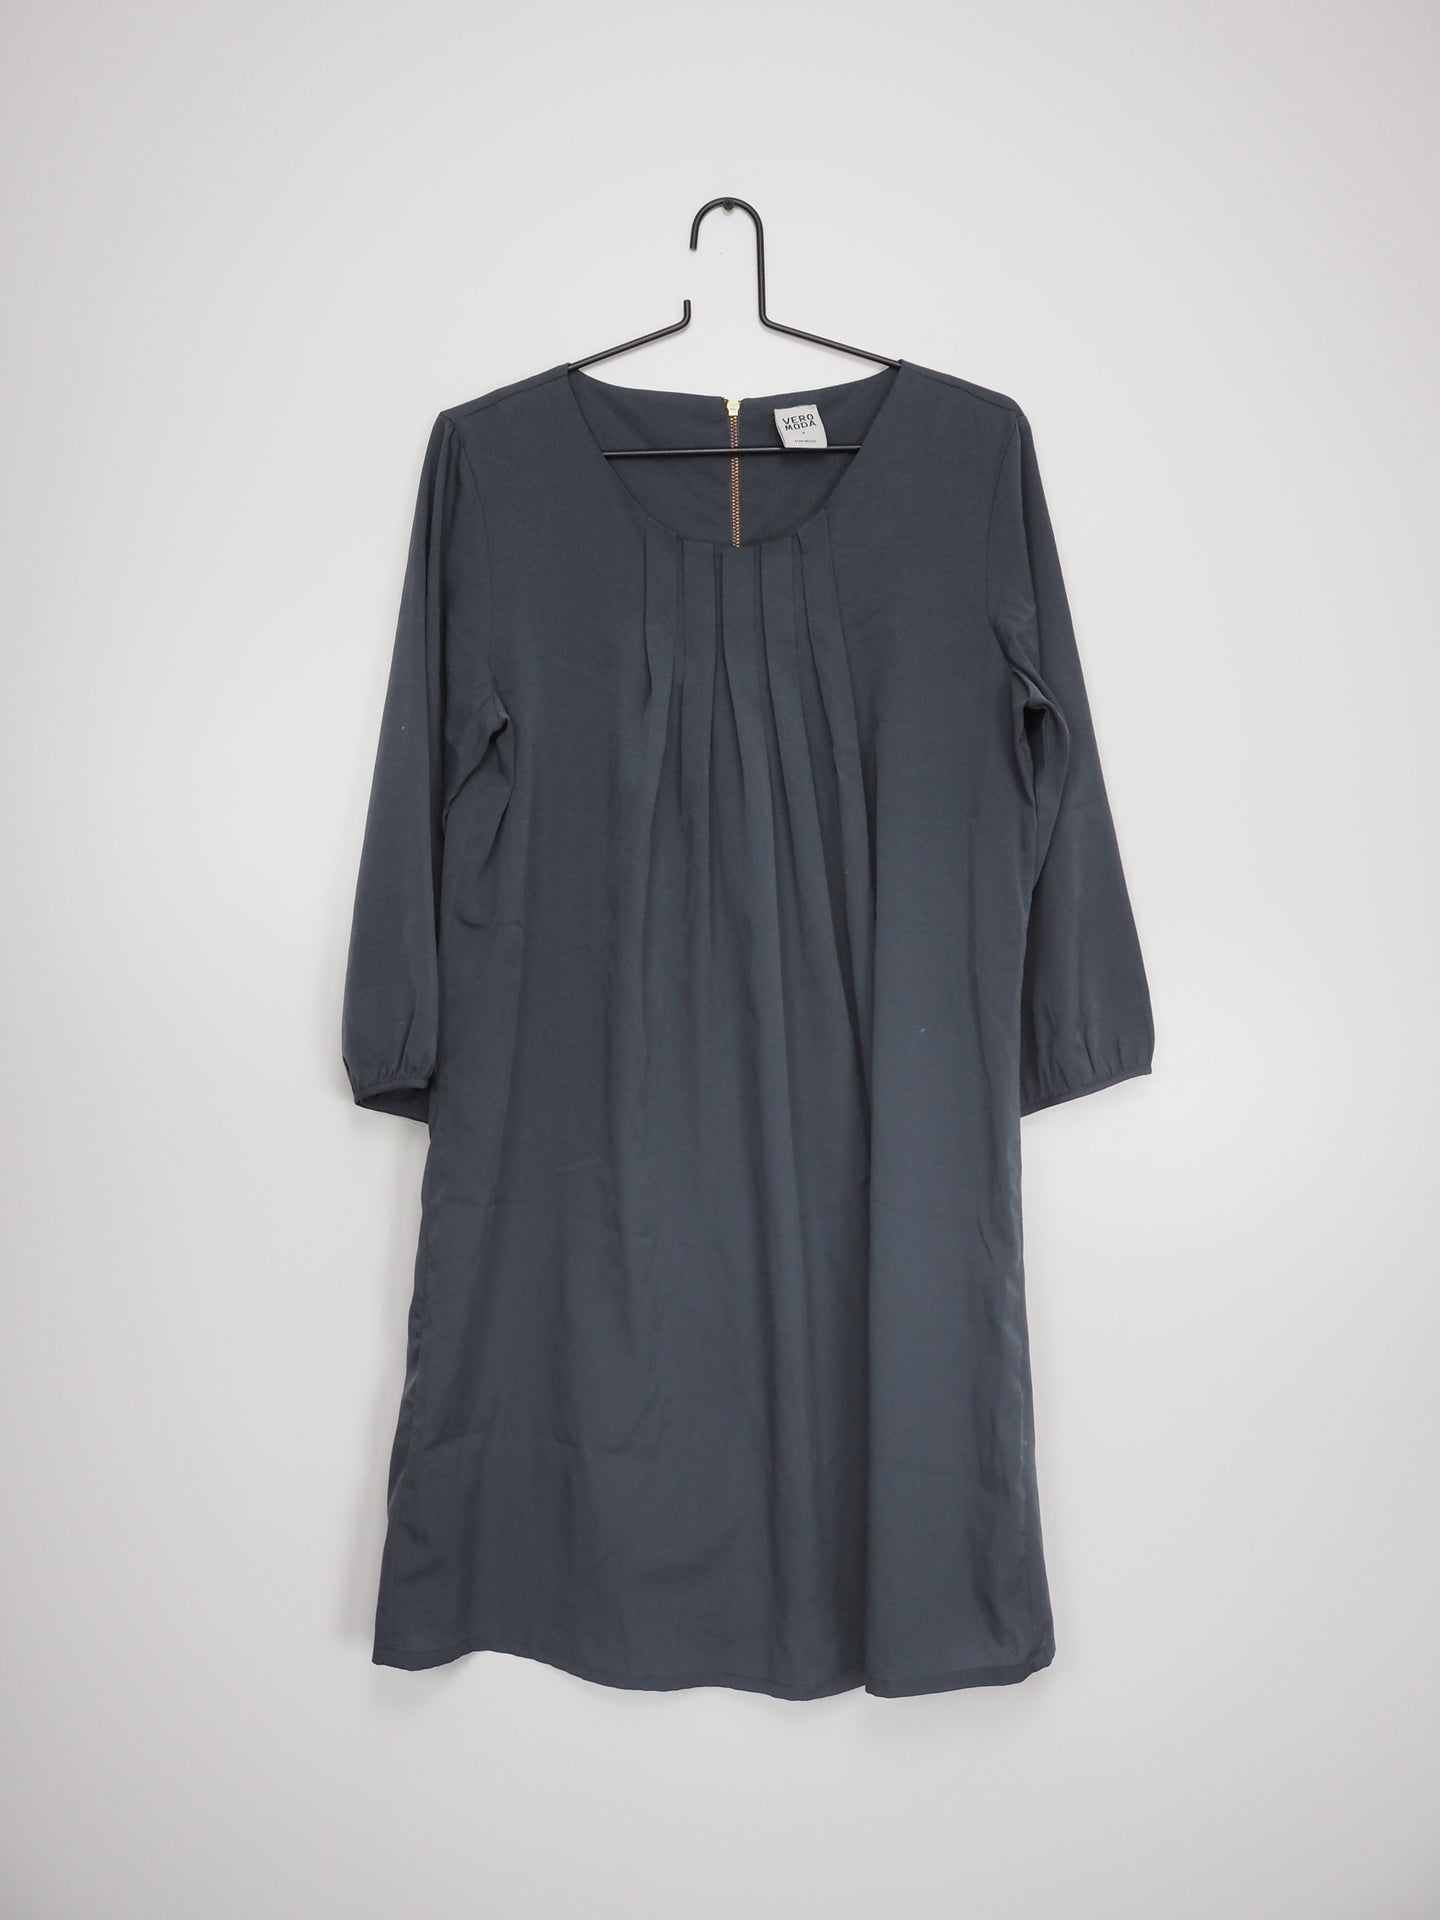 Navy dress (Vero Moda)